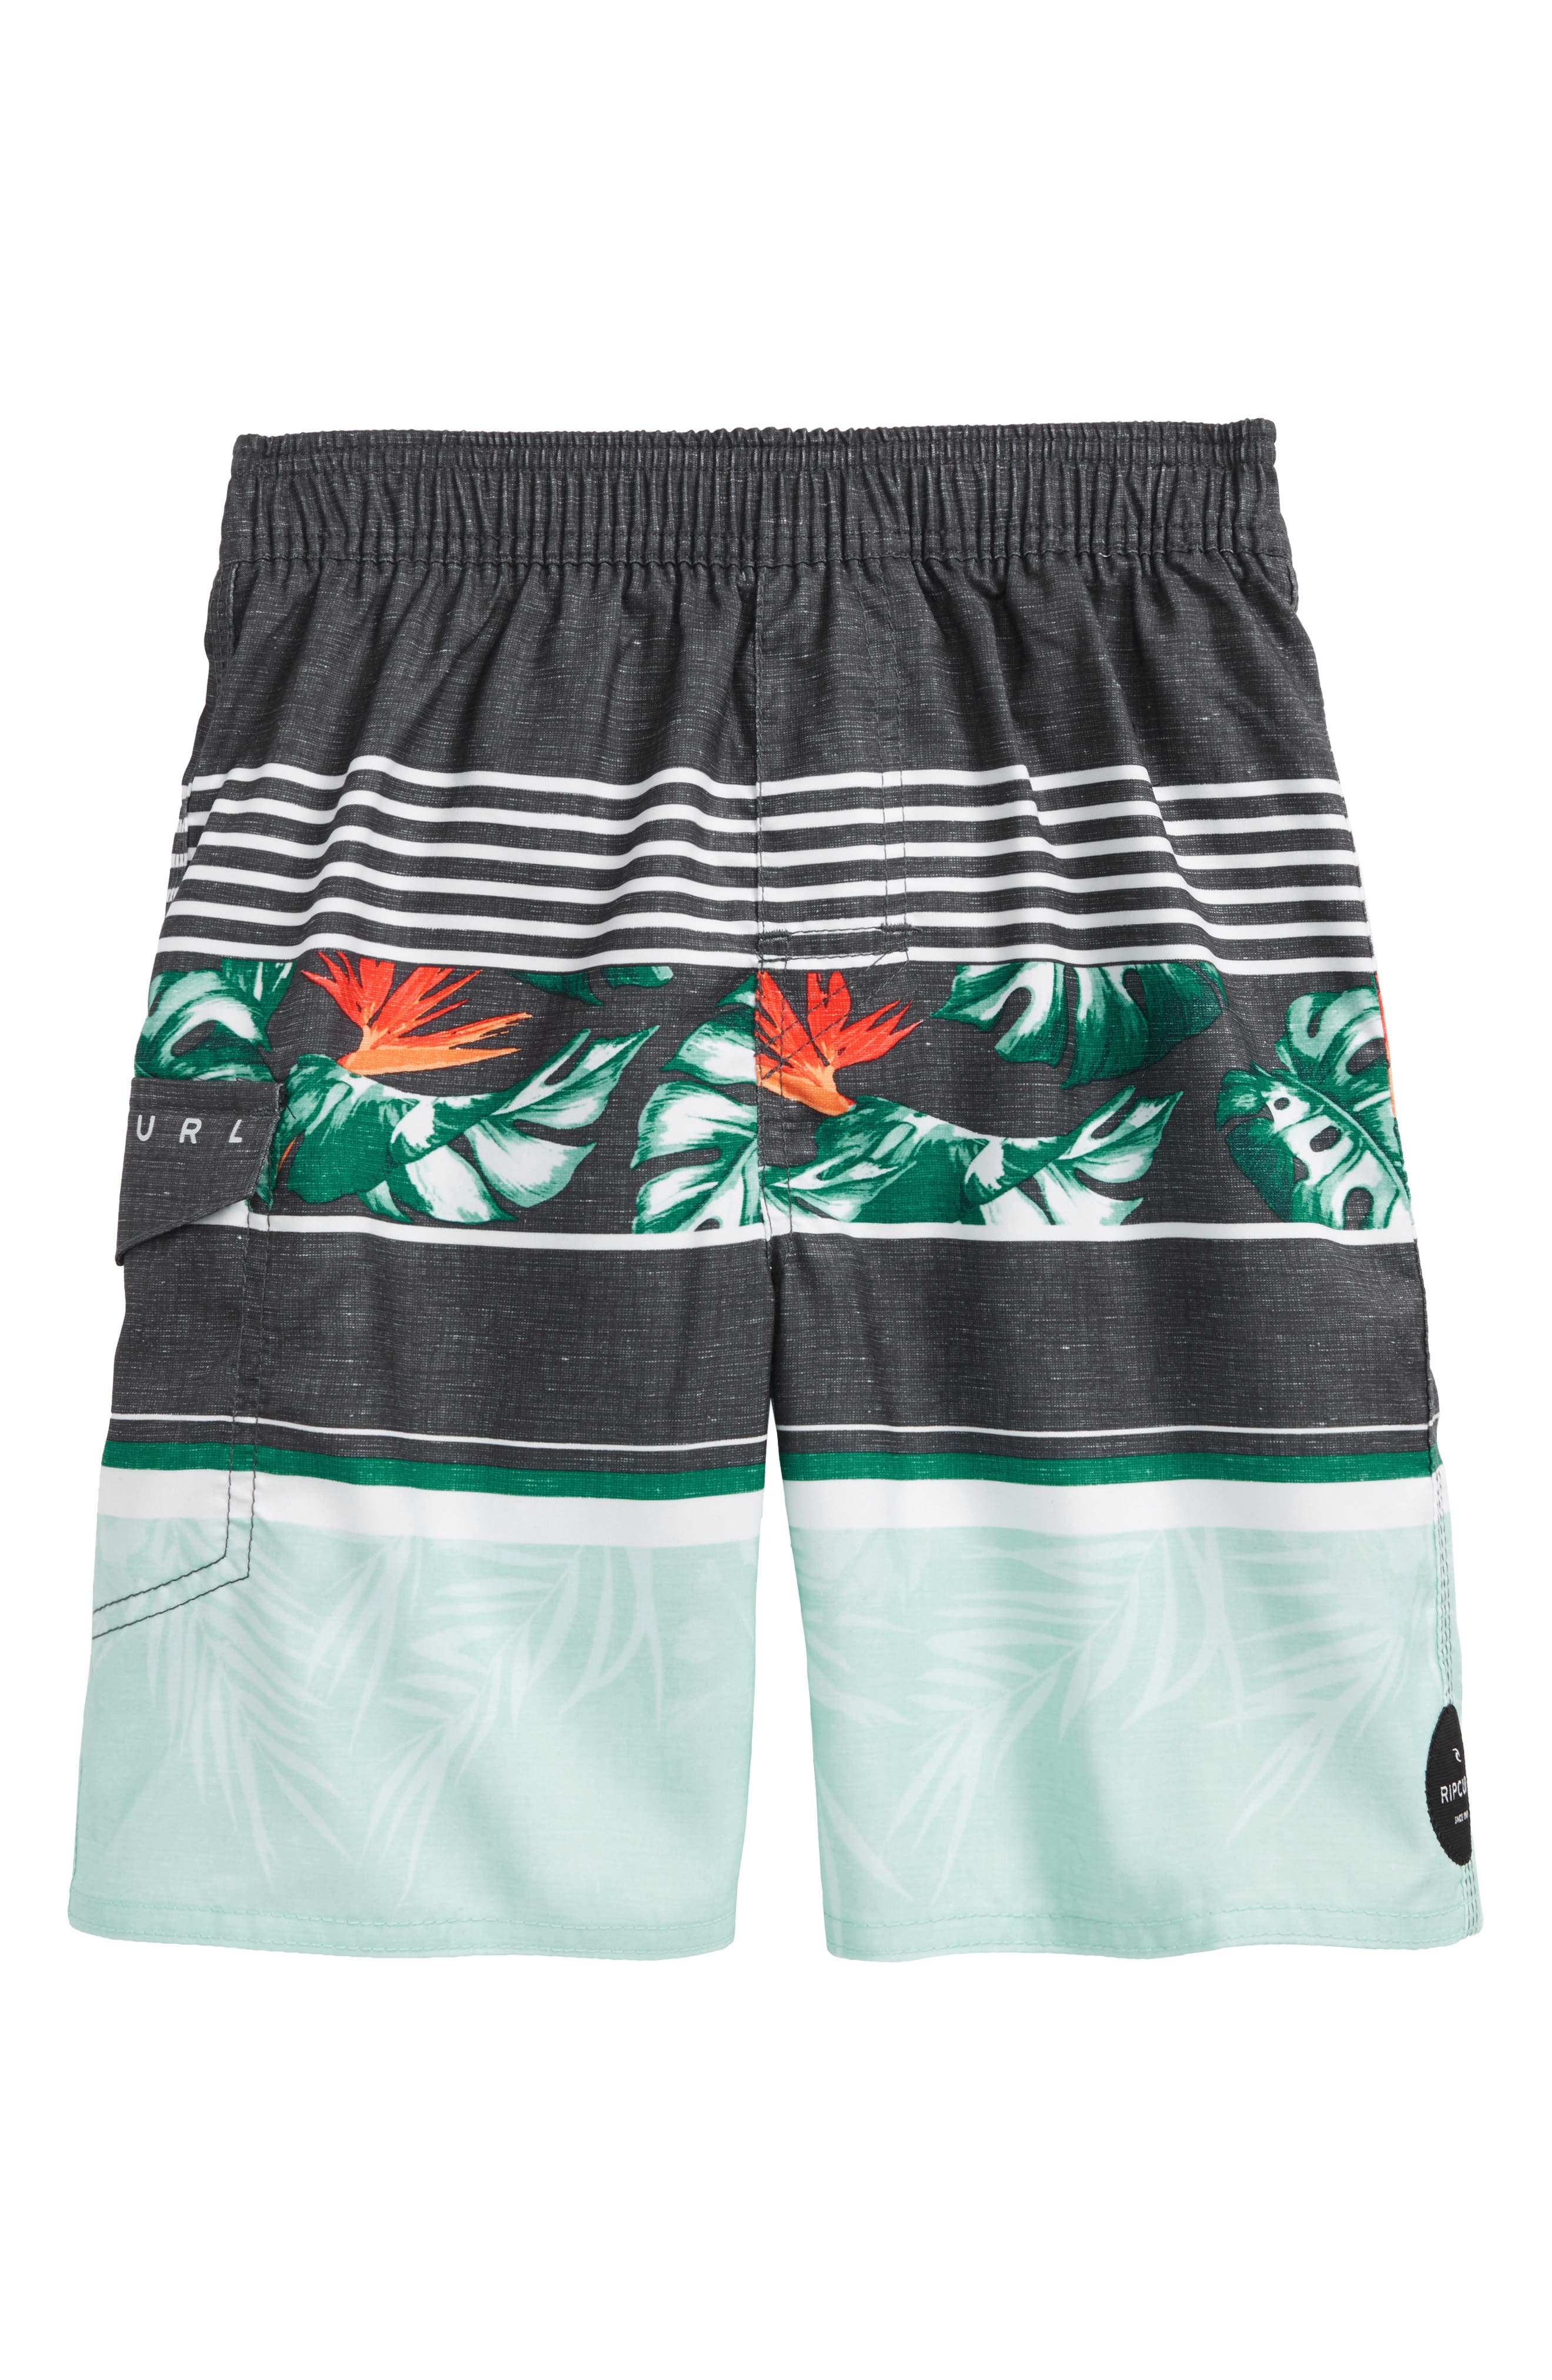 Sessions Volley Shorts,                         Main,                         color, Teal